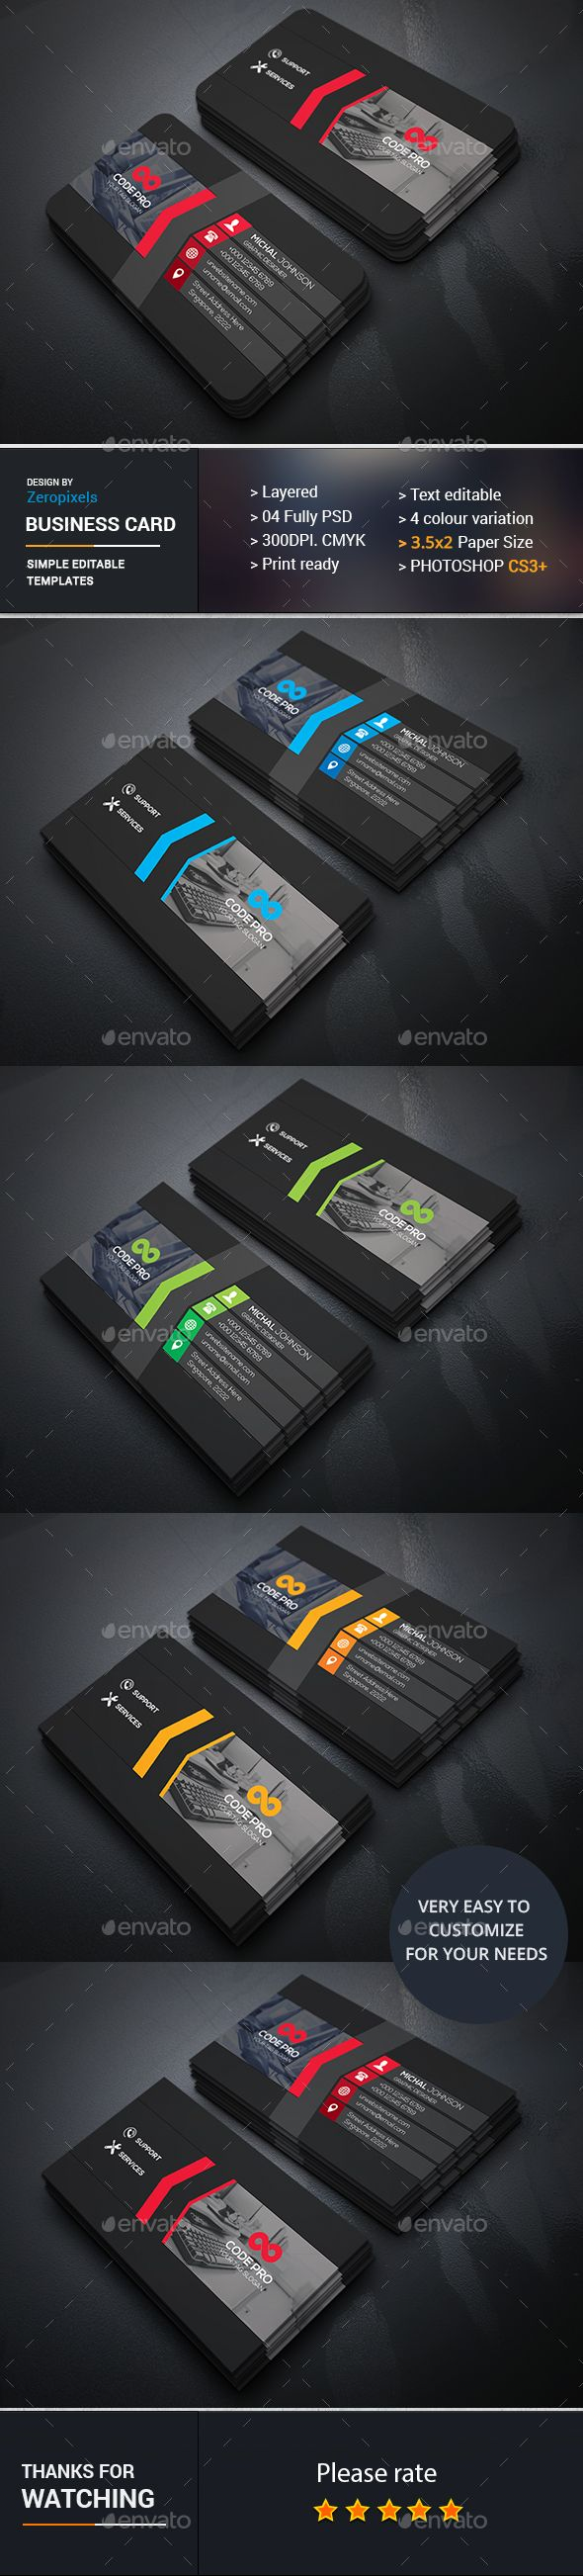 Computer repair business card photoshop psd professional computer repair business card photoshop psd professional designer available here https cheaphphosting Images